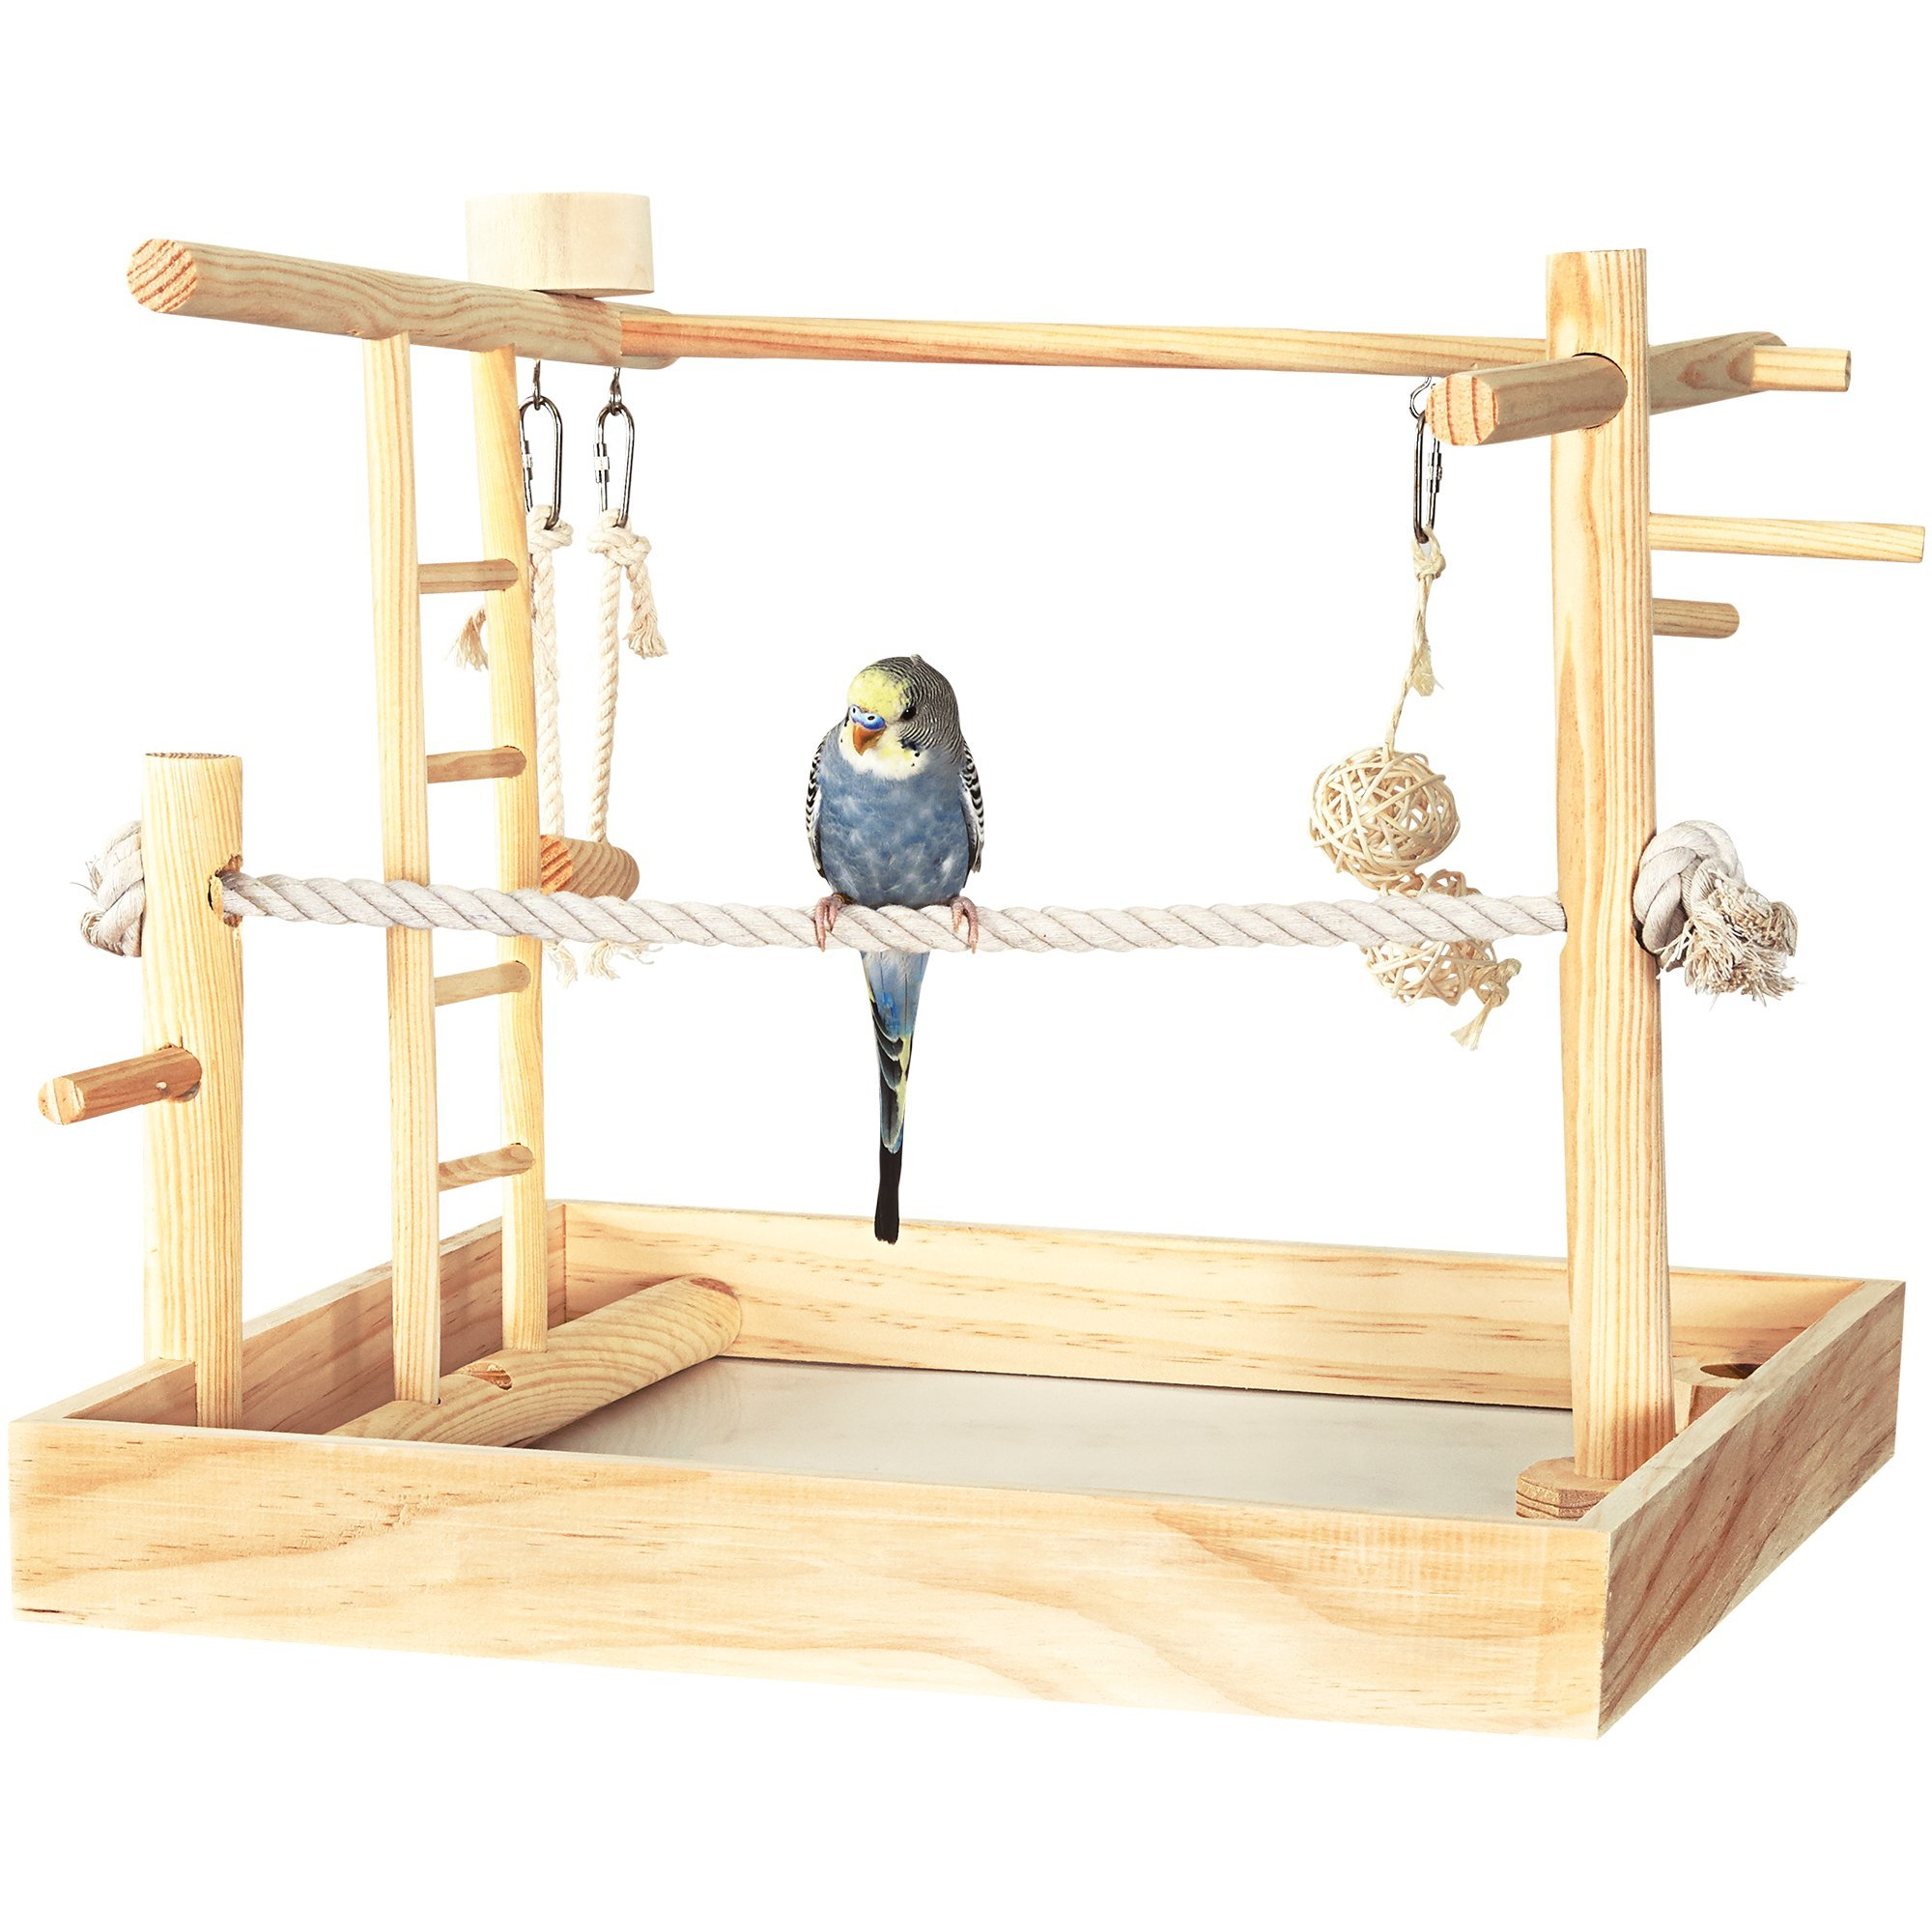 You & Me 3-in-1 Playground for Birds, 15'' L X 15'' W X 16'' H